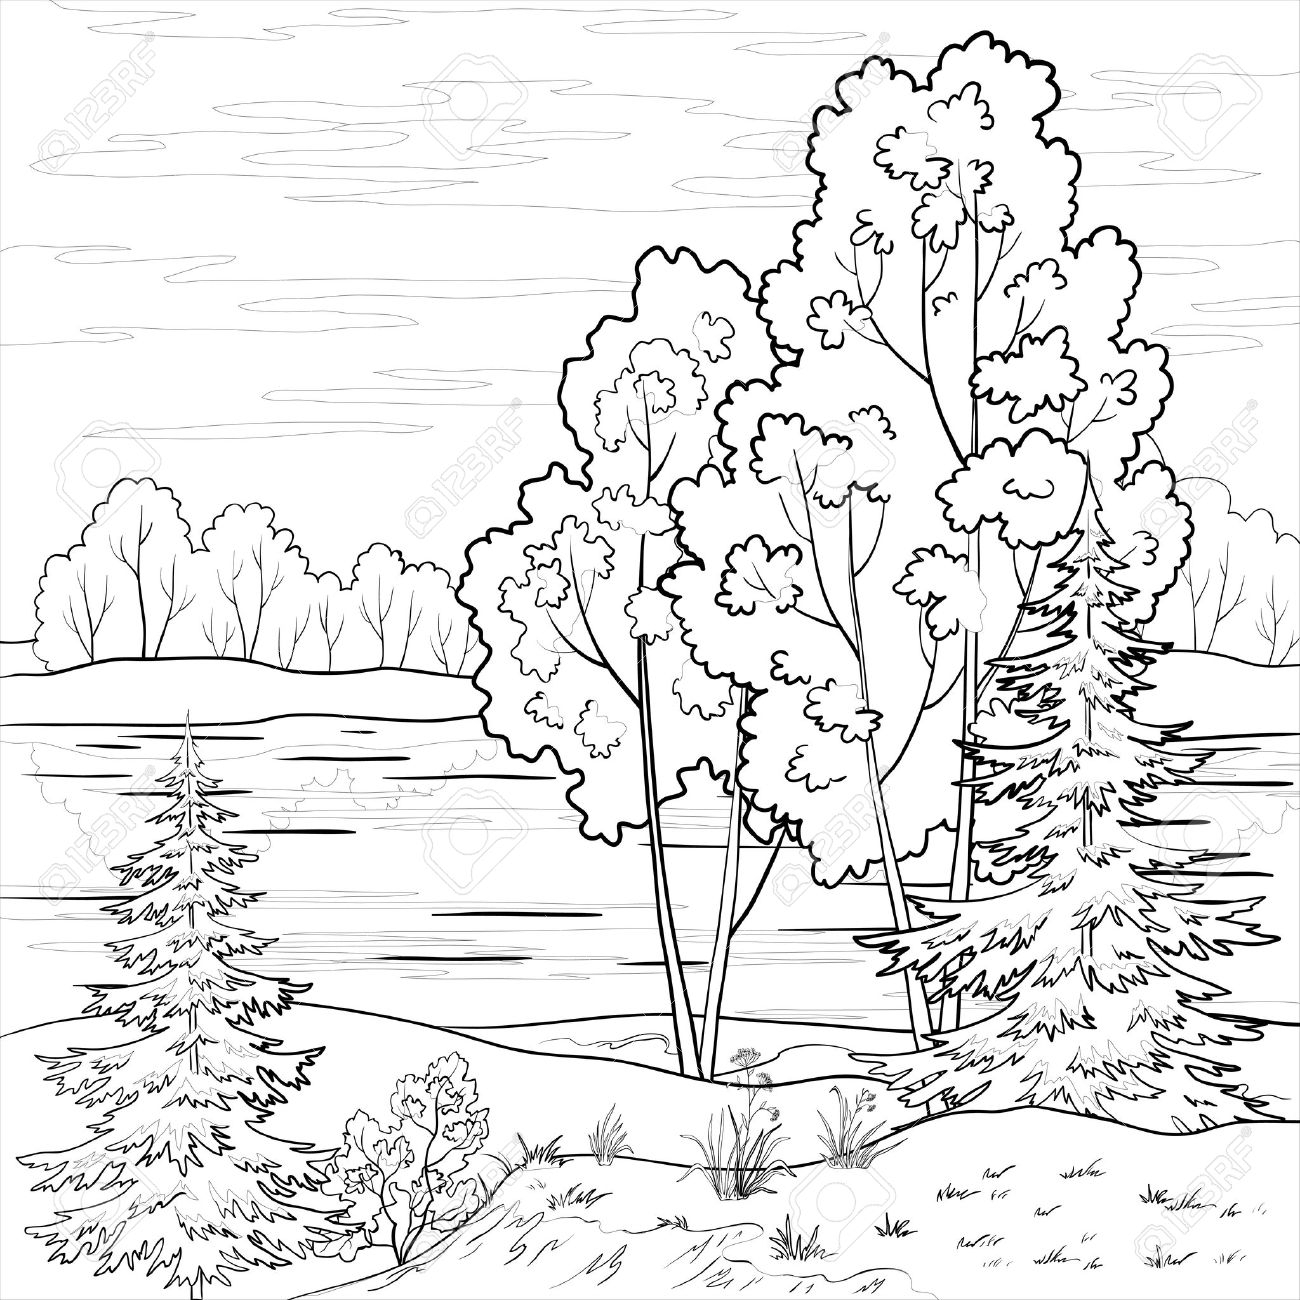 Landscape Drawing At Getdrawings